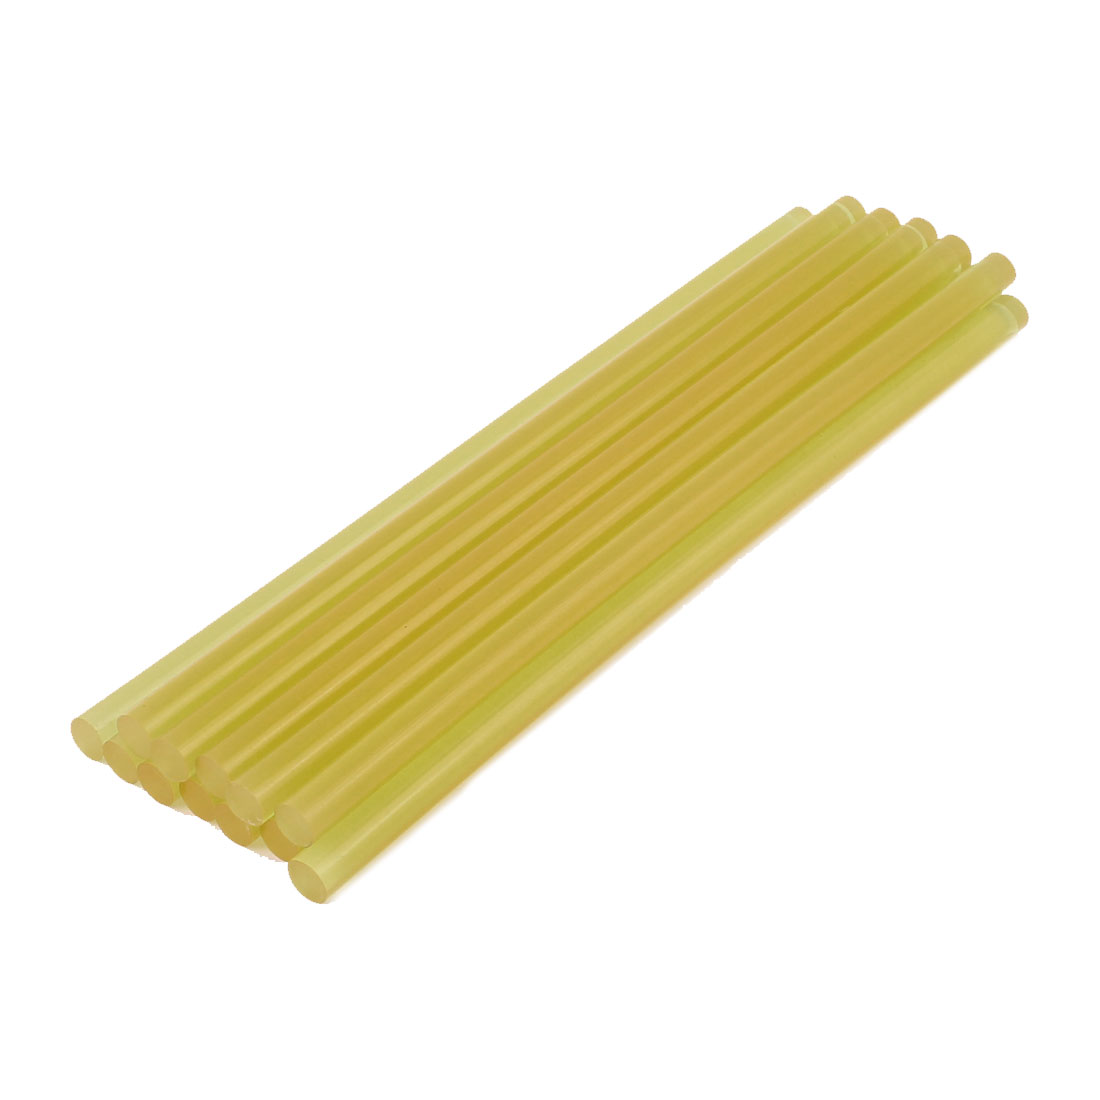 12 Pcs 11mm x 285mm Hot Melt Glue Adhesive Stick Yellow for Electric Tool Heating Gun